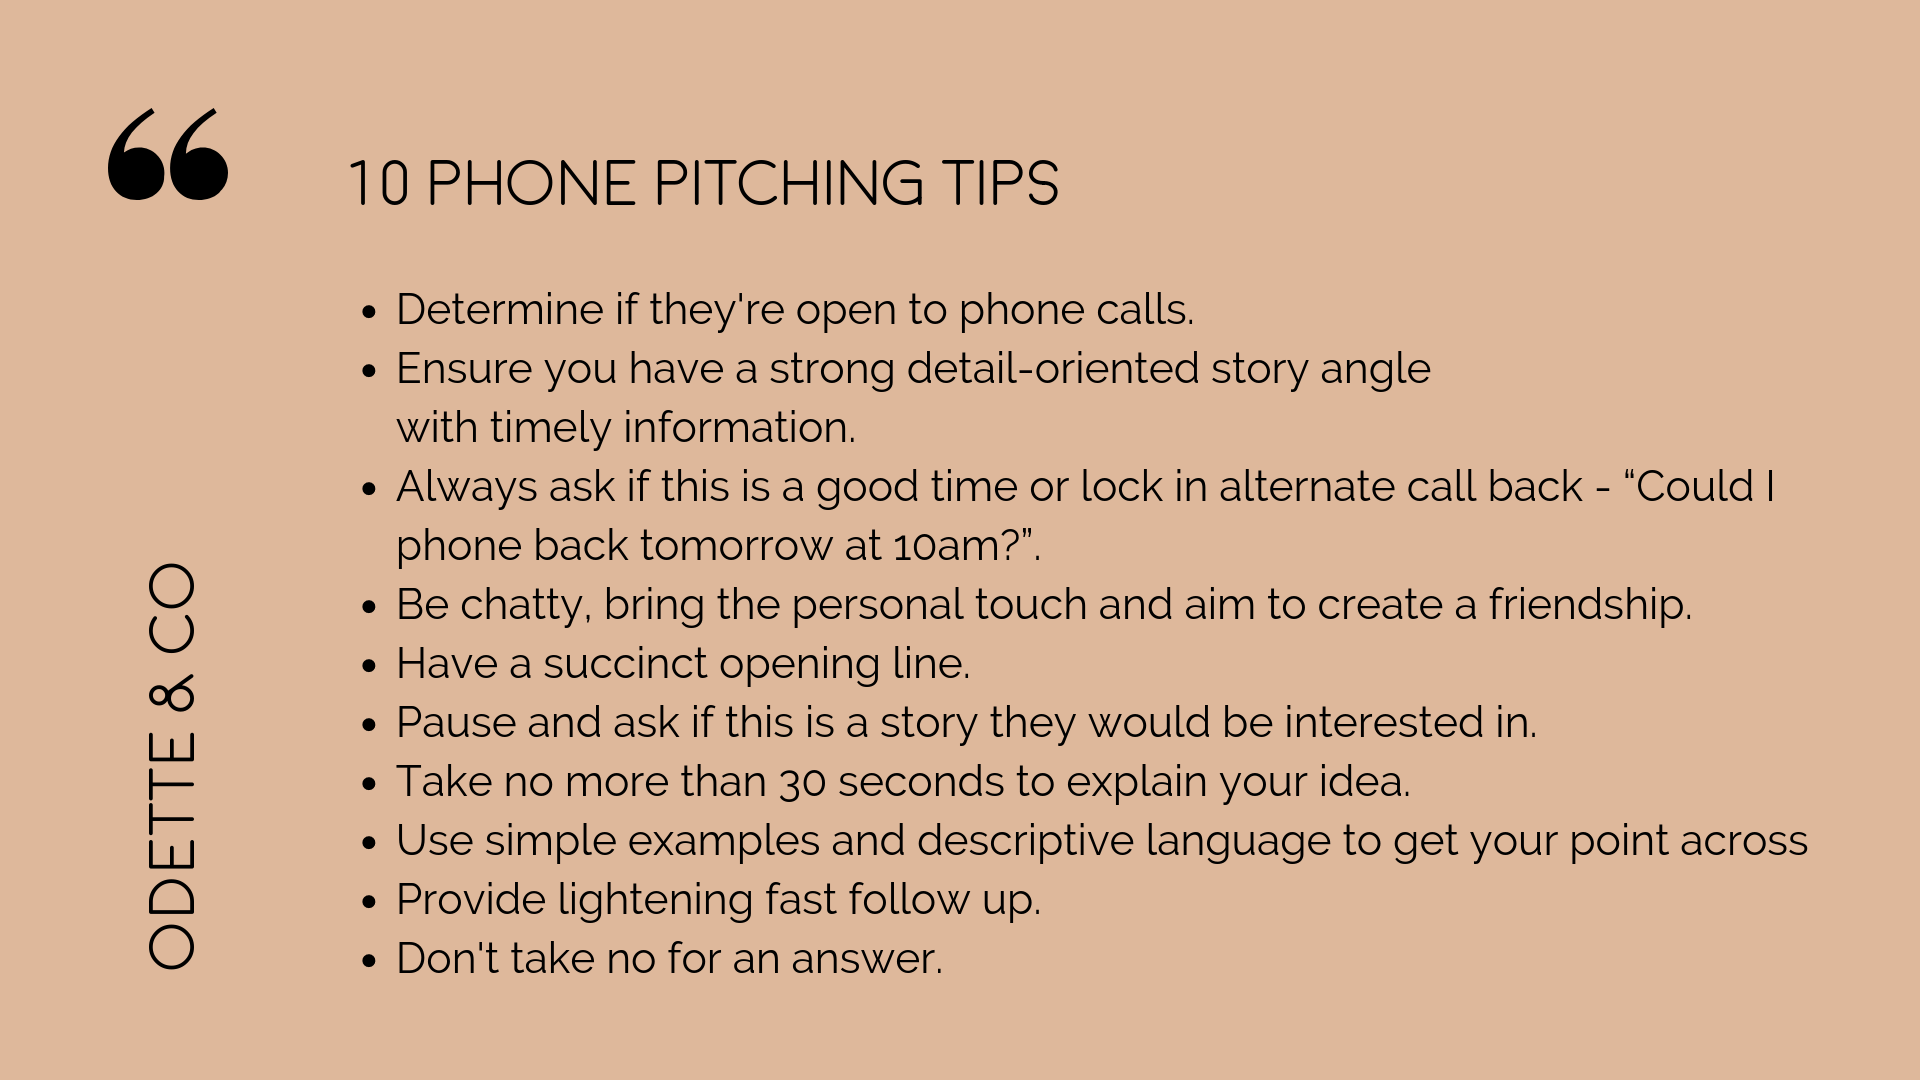 tips for phone pitching